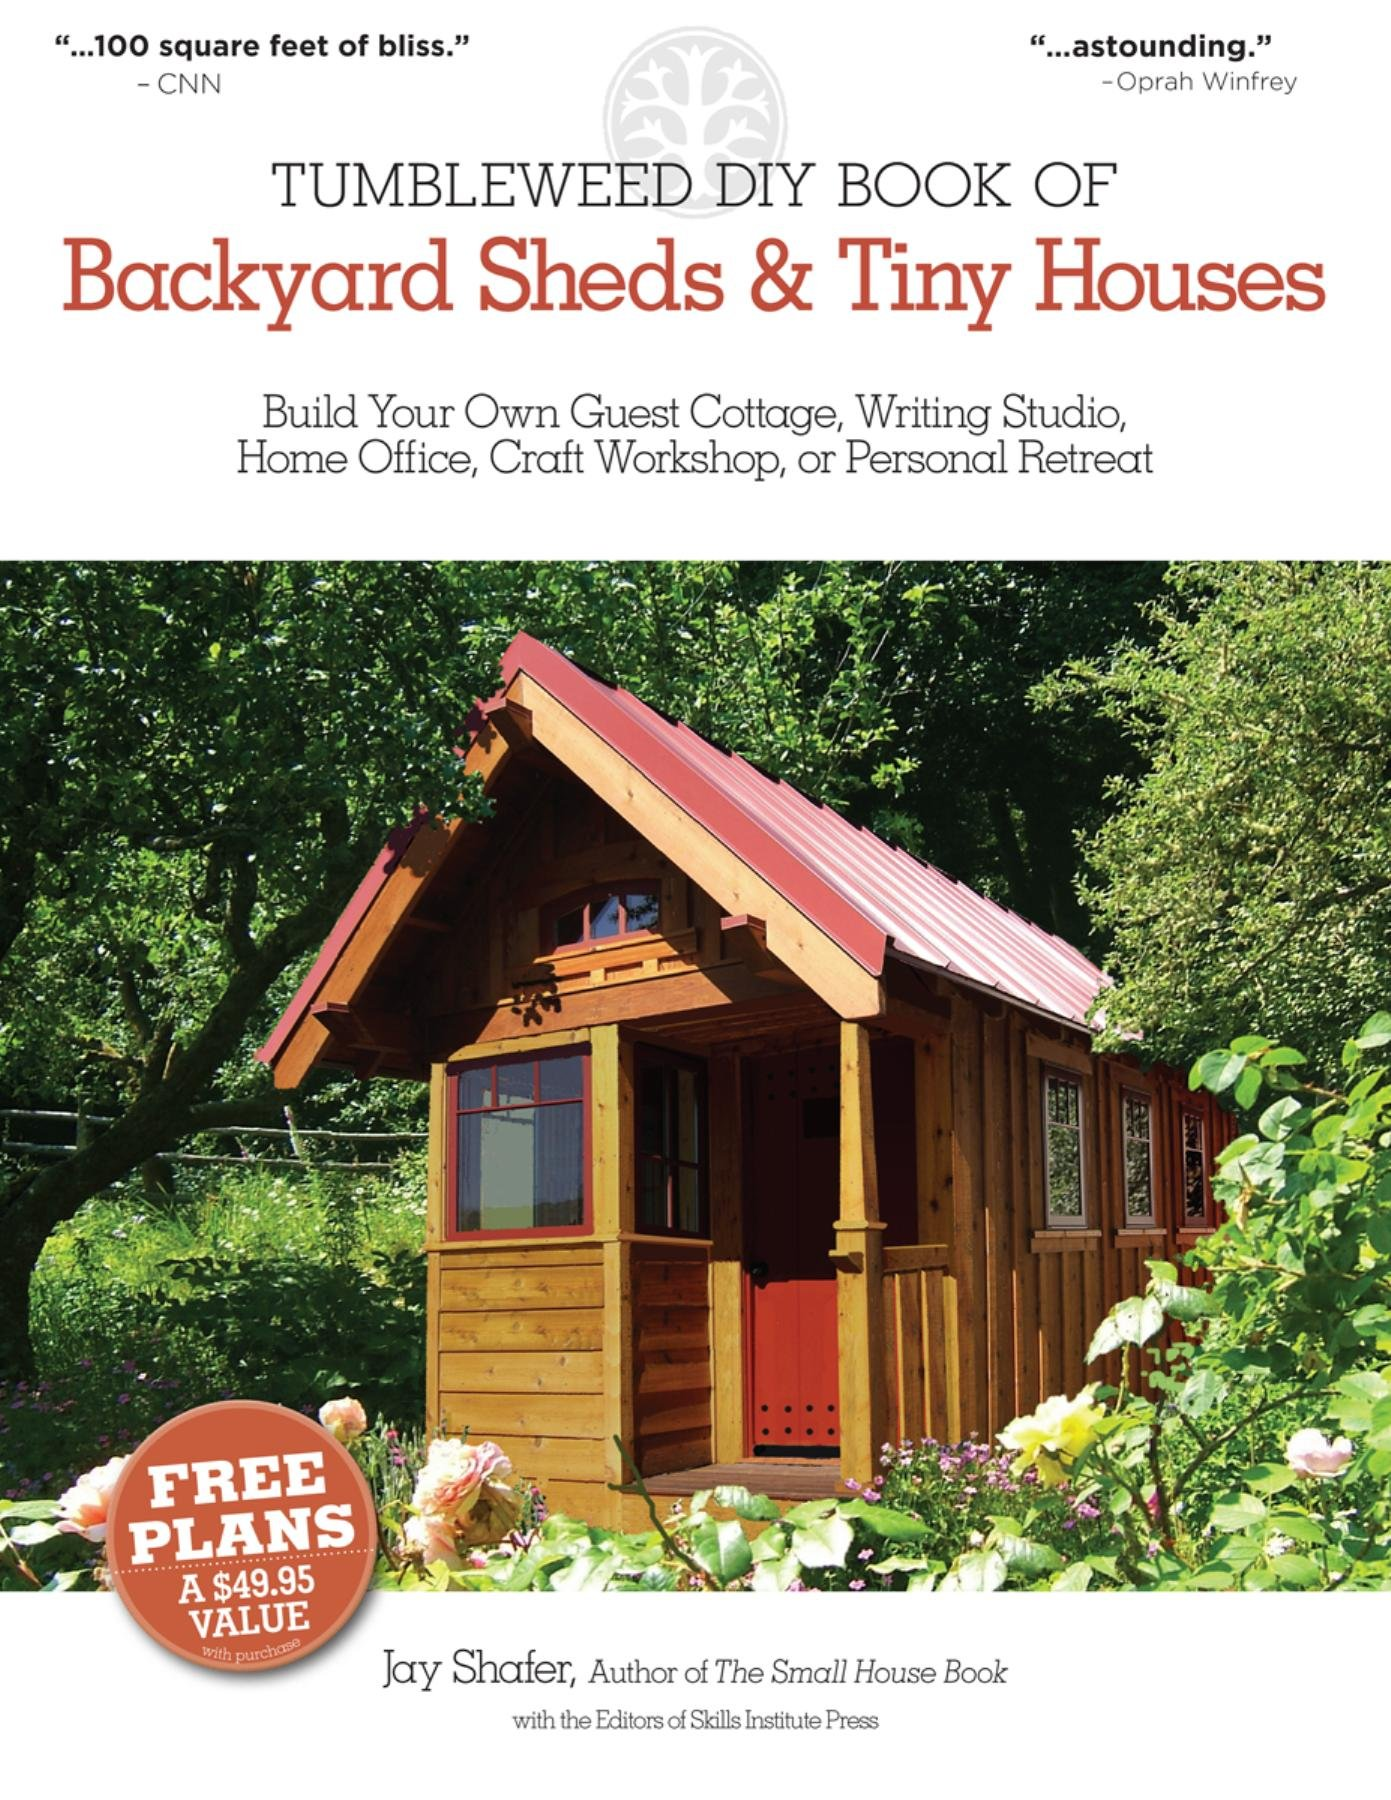 The tumbleweed diy book of backyard sheds and tiny houses build the tumbleweed diy book of backyard sheds and tiny houses build your own guest cottage writing studio home office craft workshop or personal retreat solutioingenieria